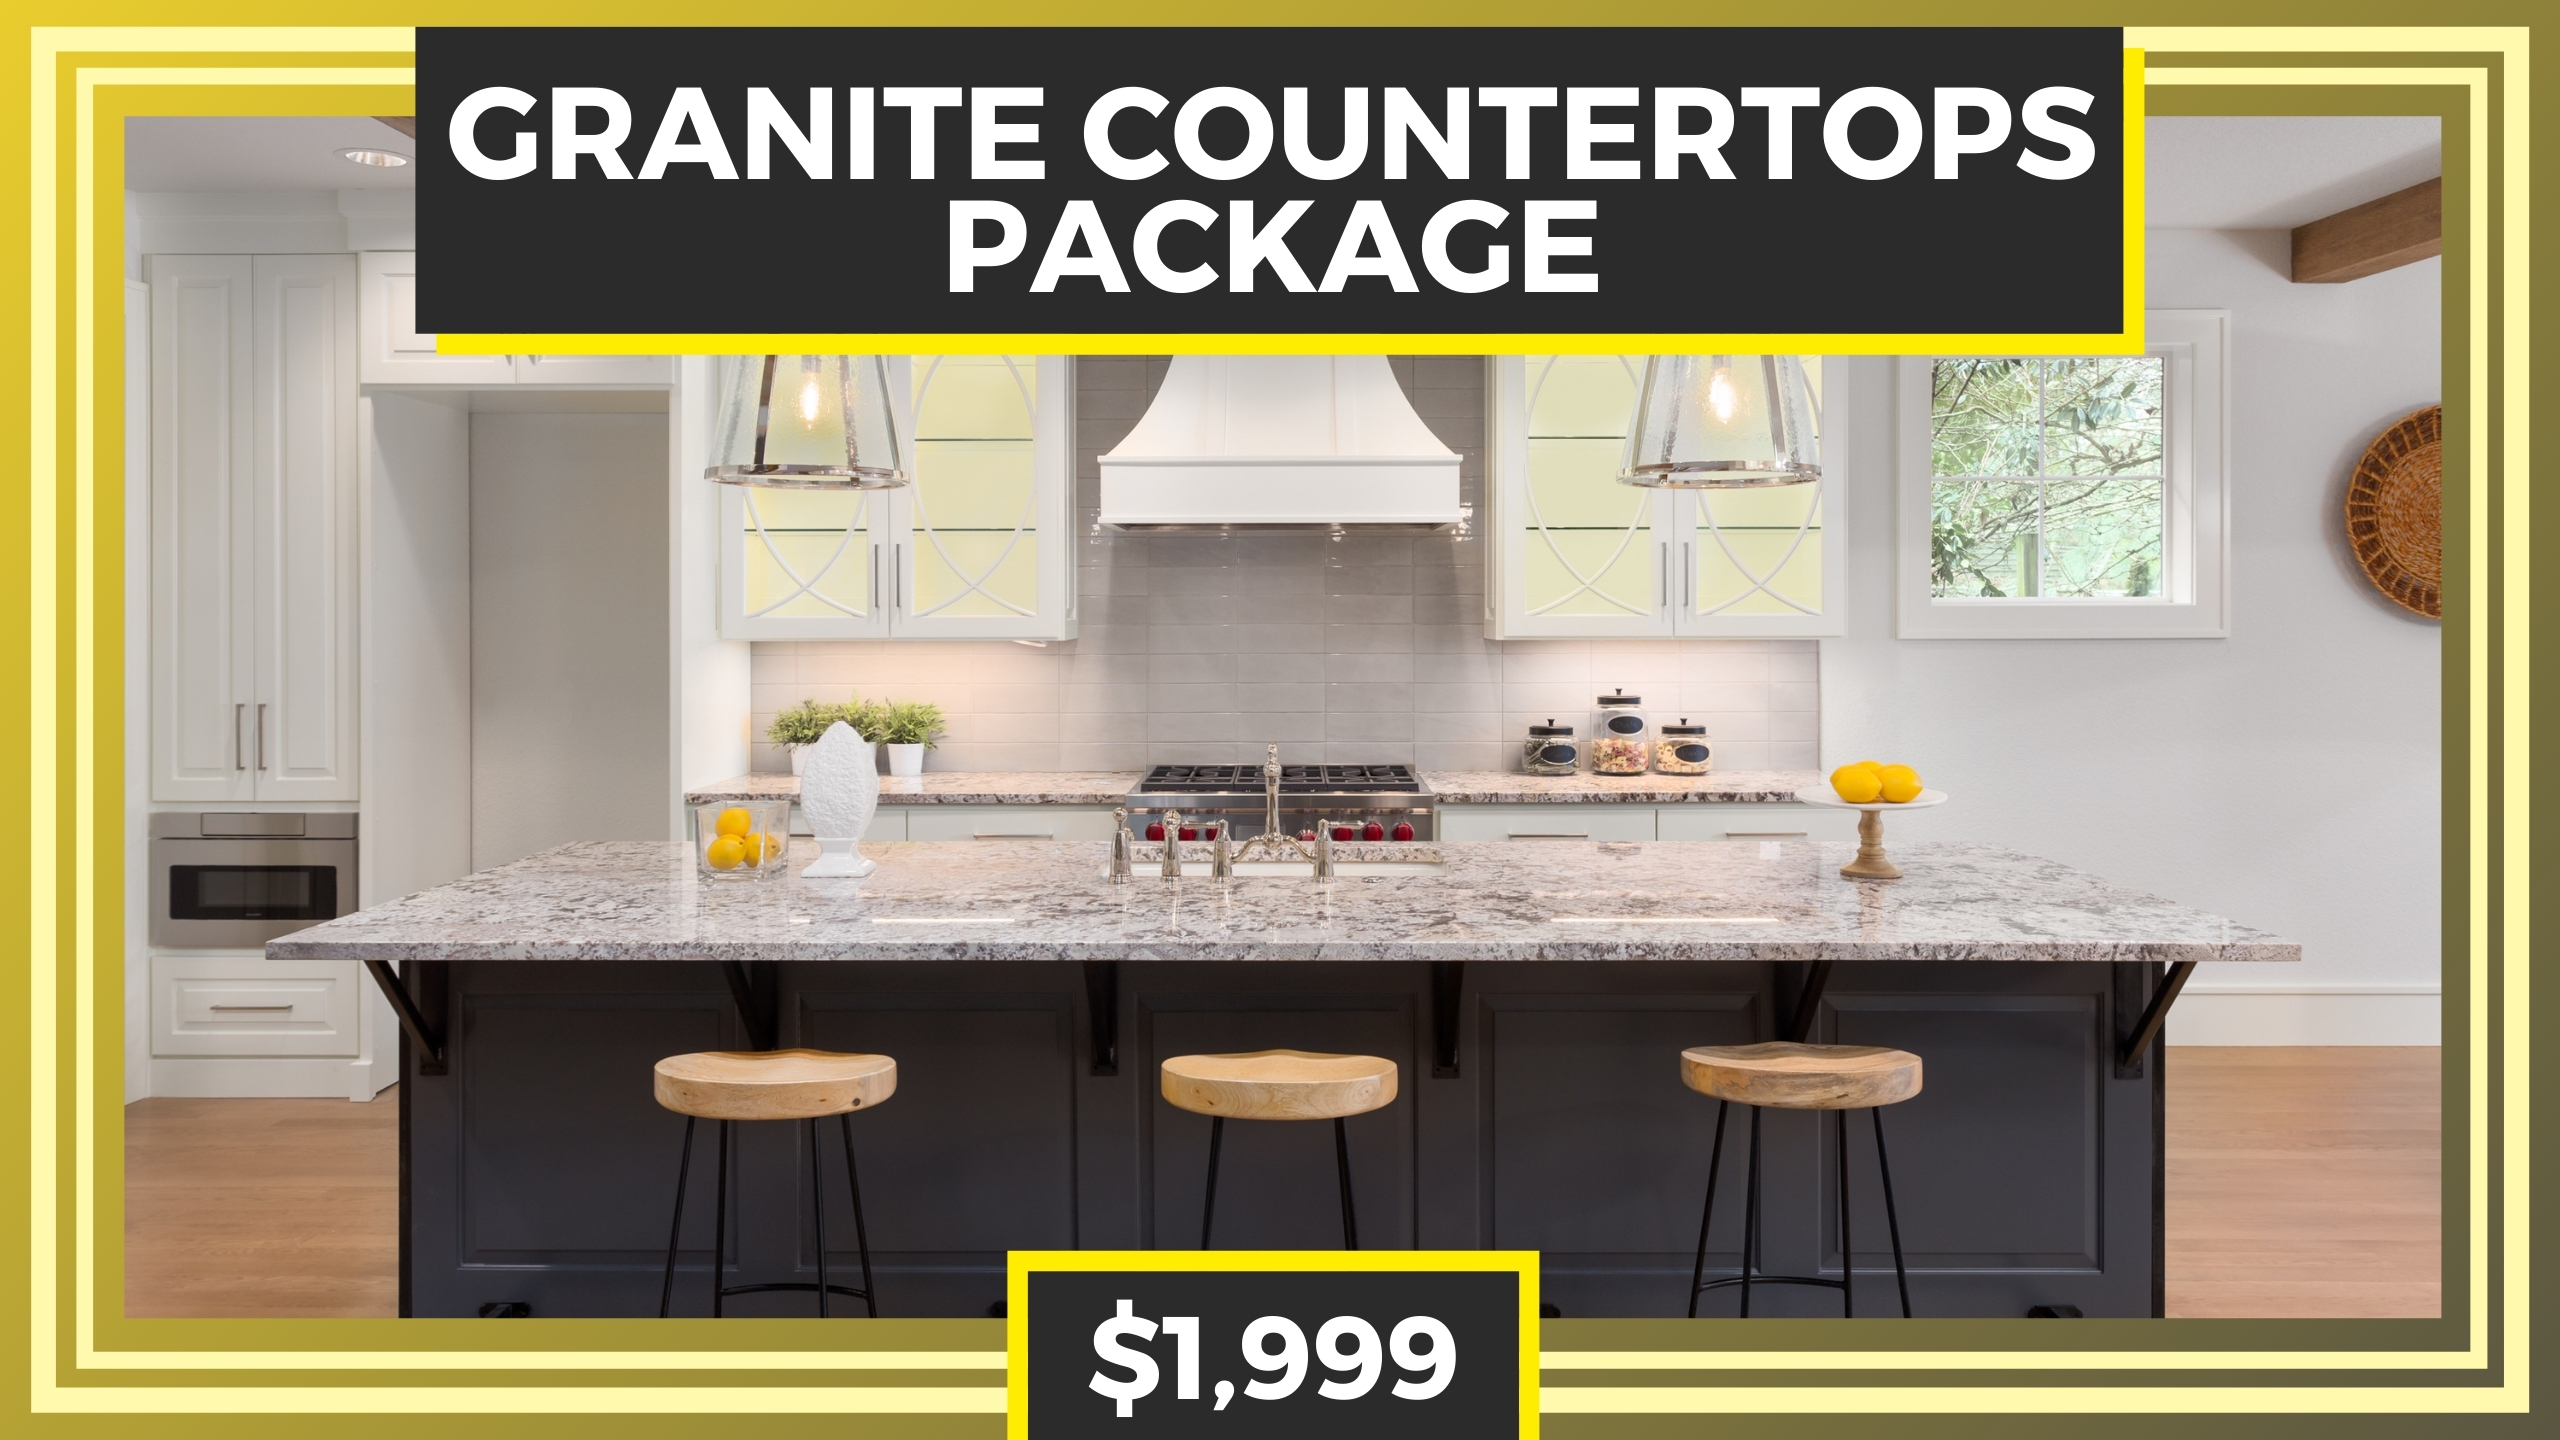 Lexington Youtube Cover Granite countertops PACKAGE 2560 x 1440 px